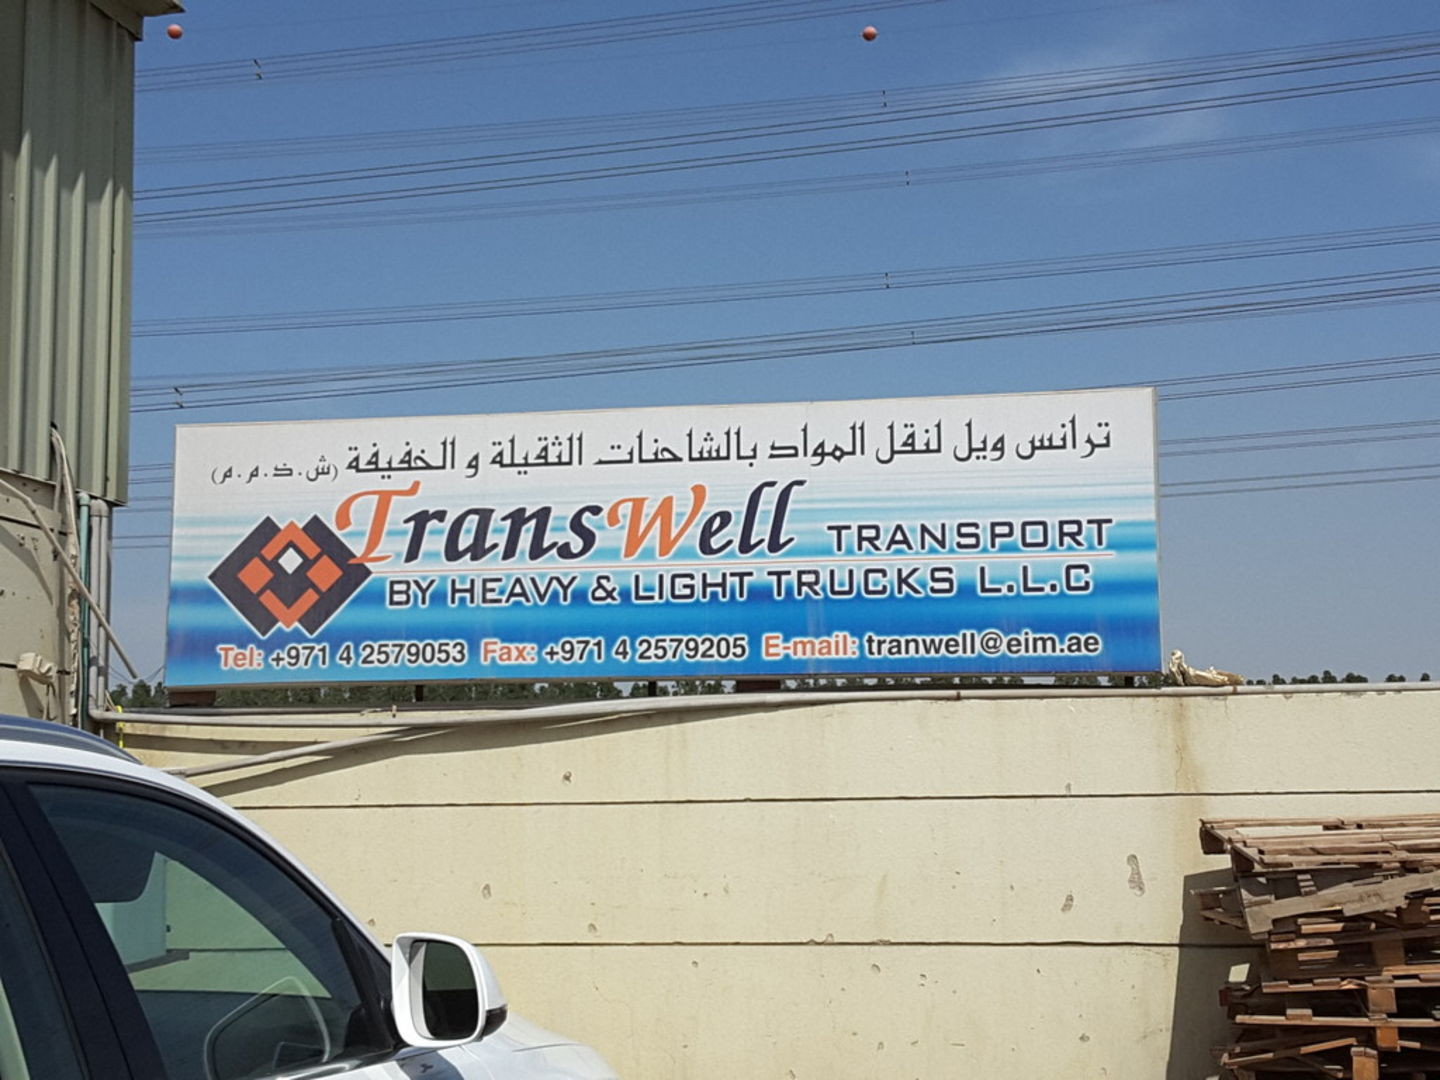 HiDubai-business-trans-well-transport-by-heavy-light-trucks-shipping-logistics-road-cargo-services-al-qusais-industrial-4-dubai-2